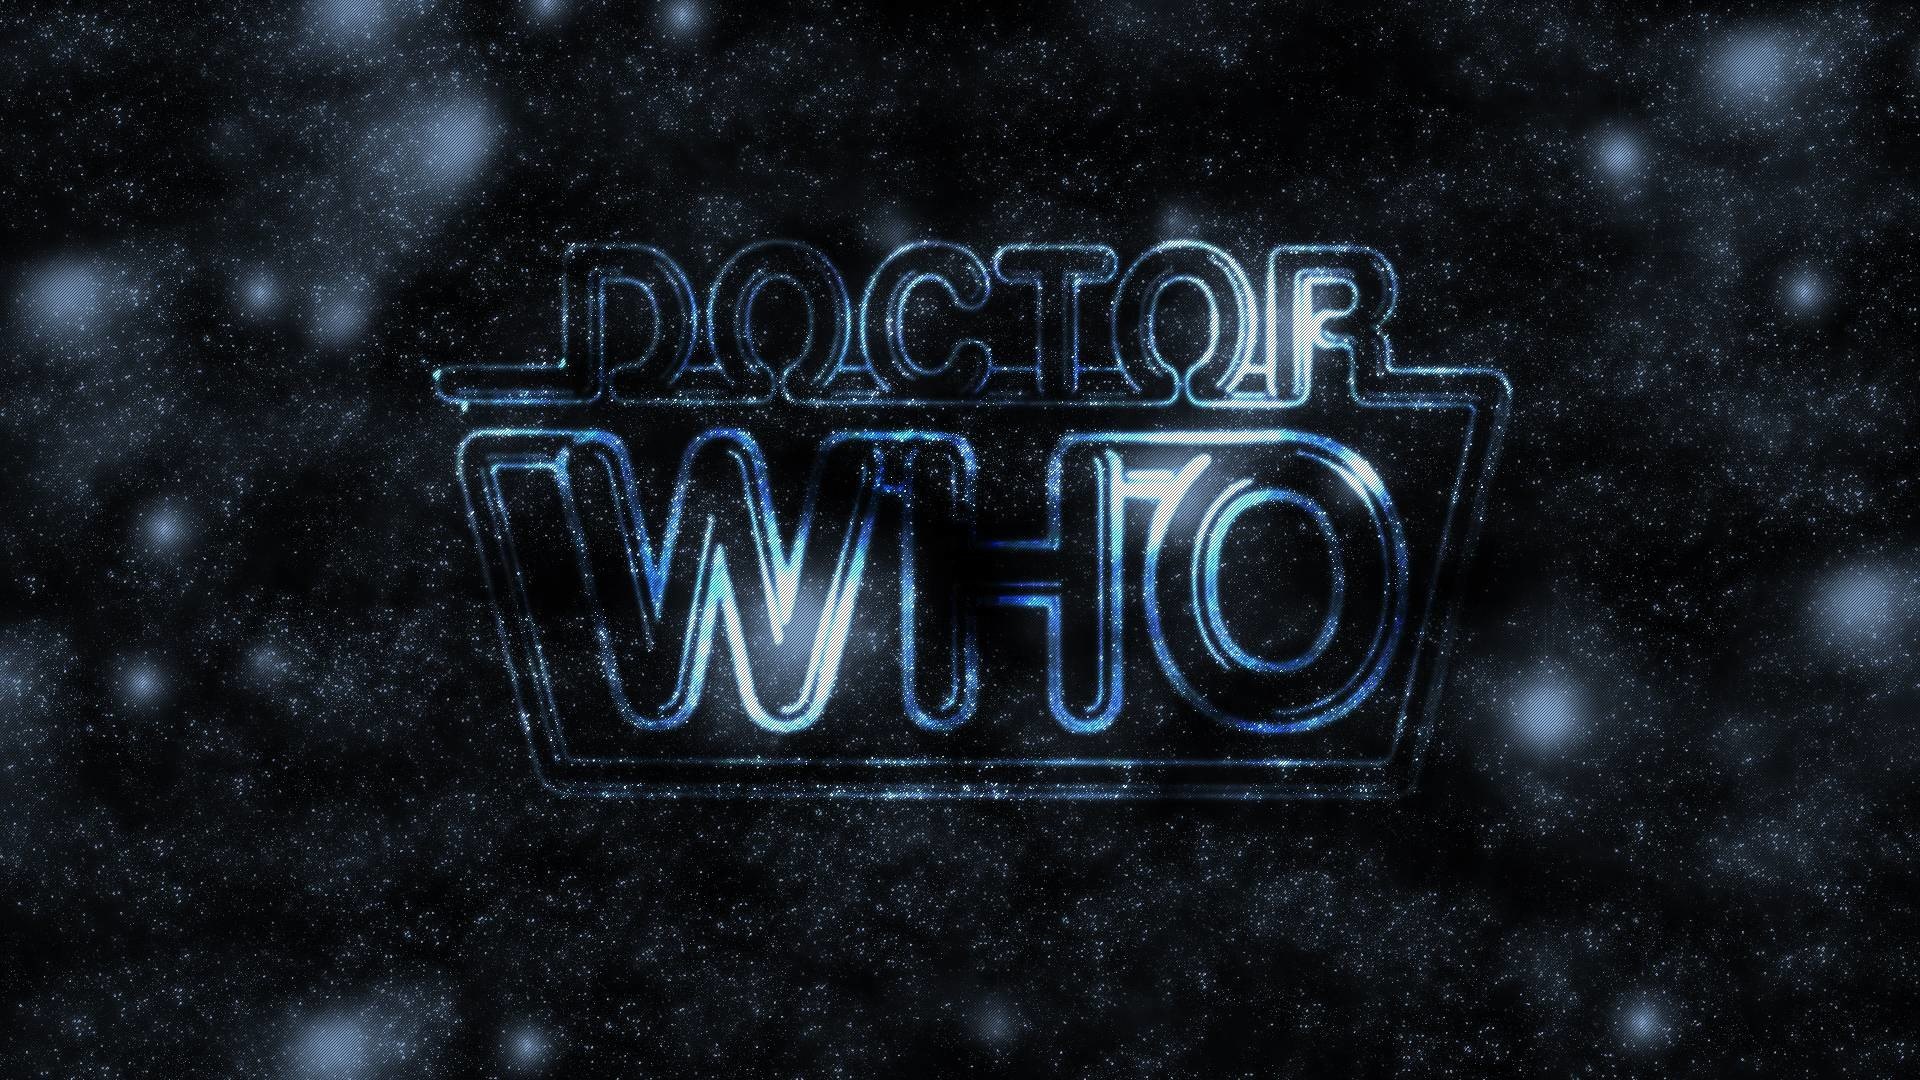 The Doctor in the Stars HD Wallpaper | Download HD Wallpaper, High .